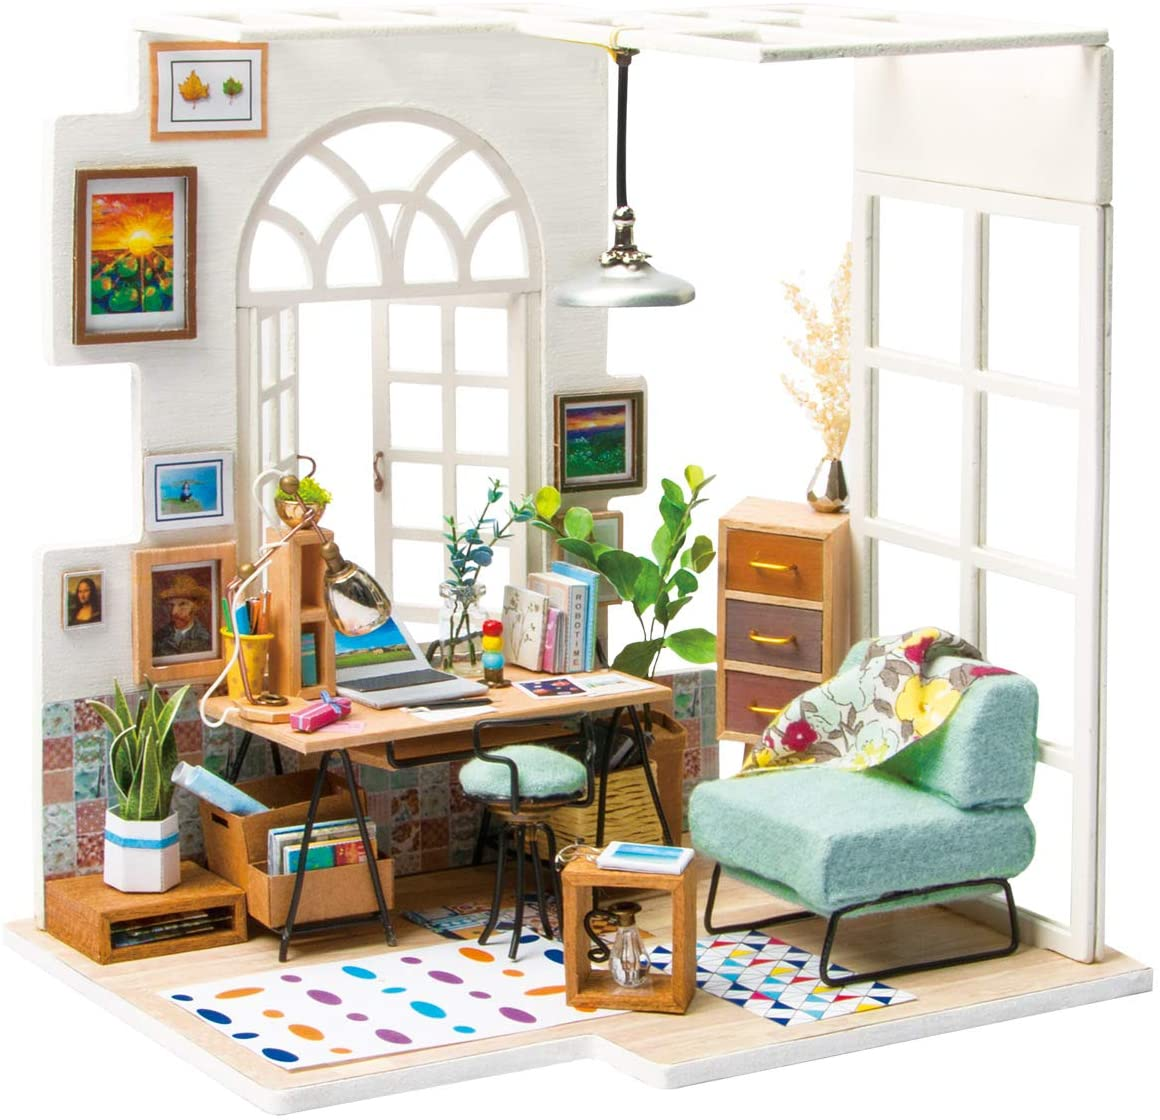 interior of a miniature dollhouse